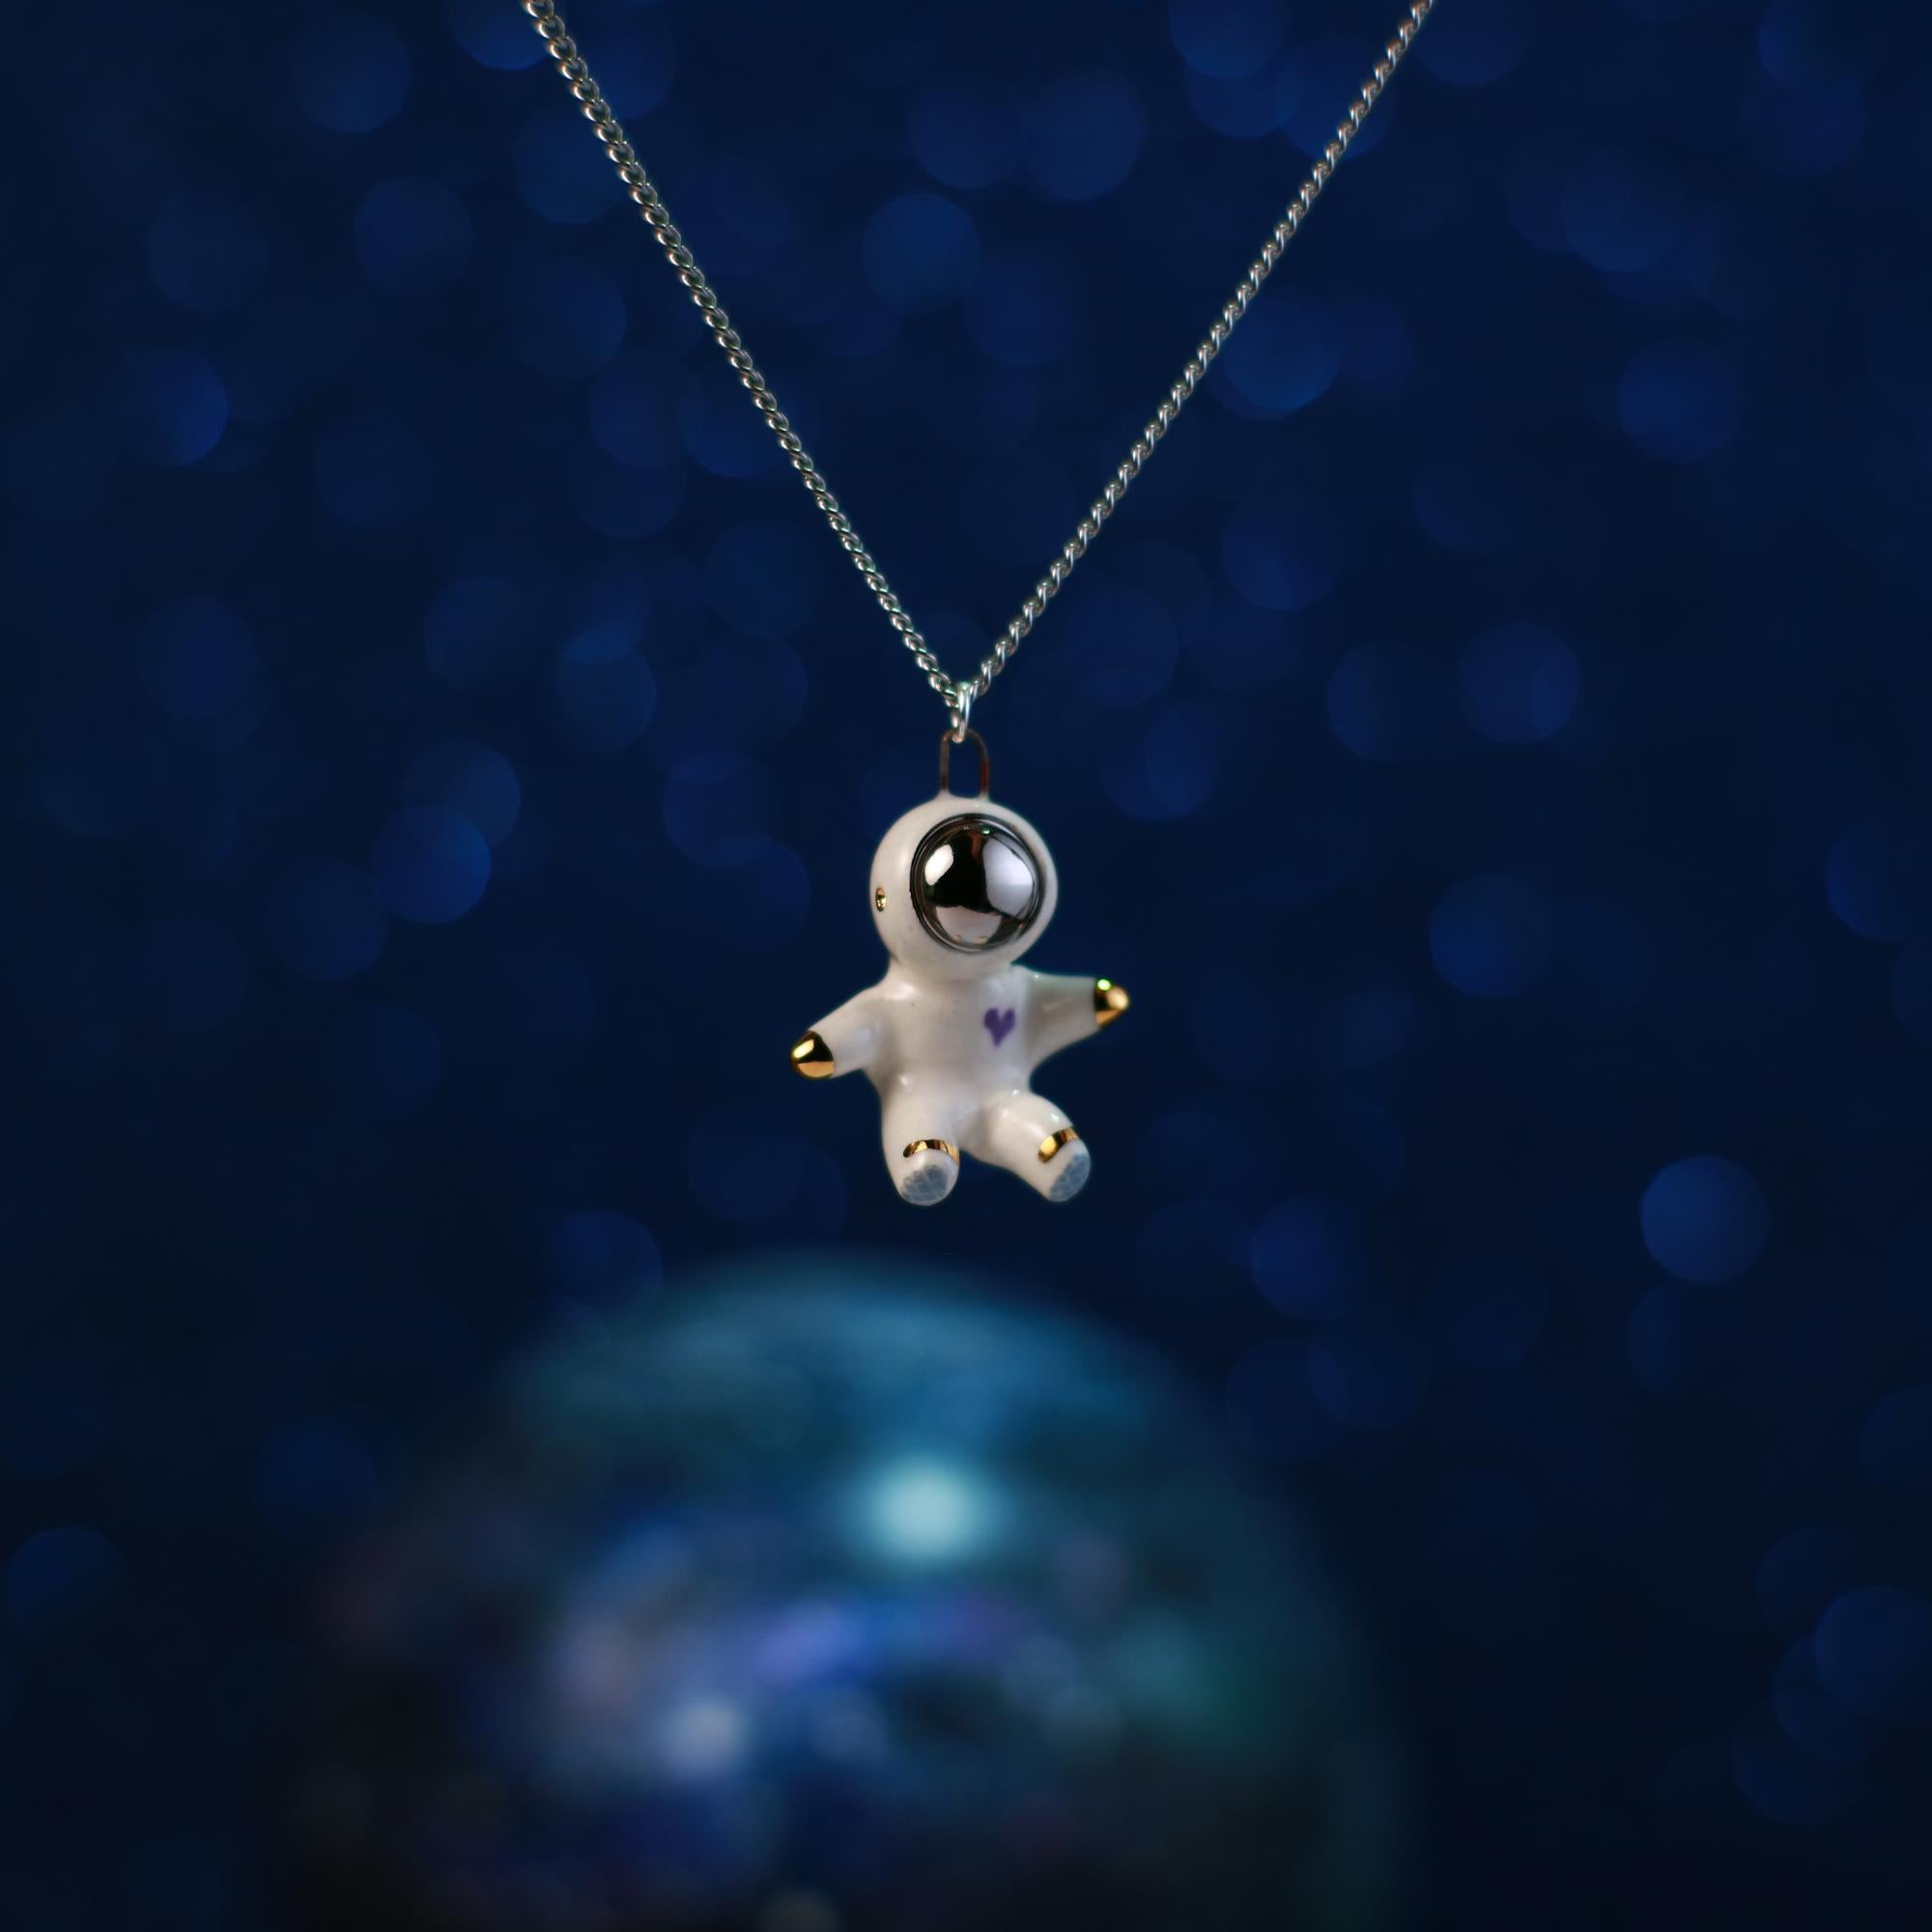 Floating Heart Astronaut Necklace